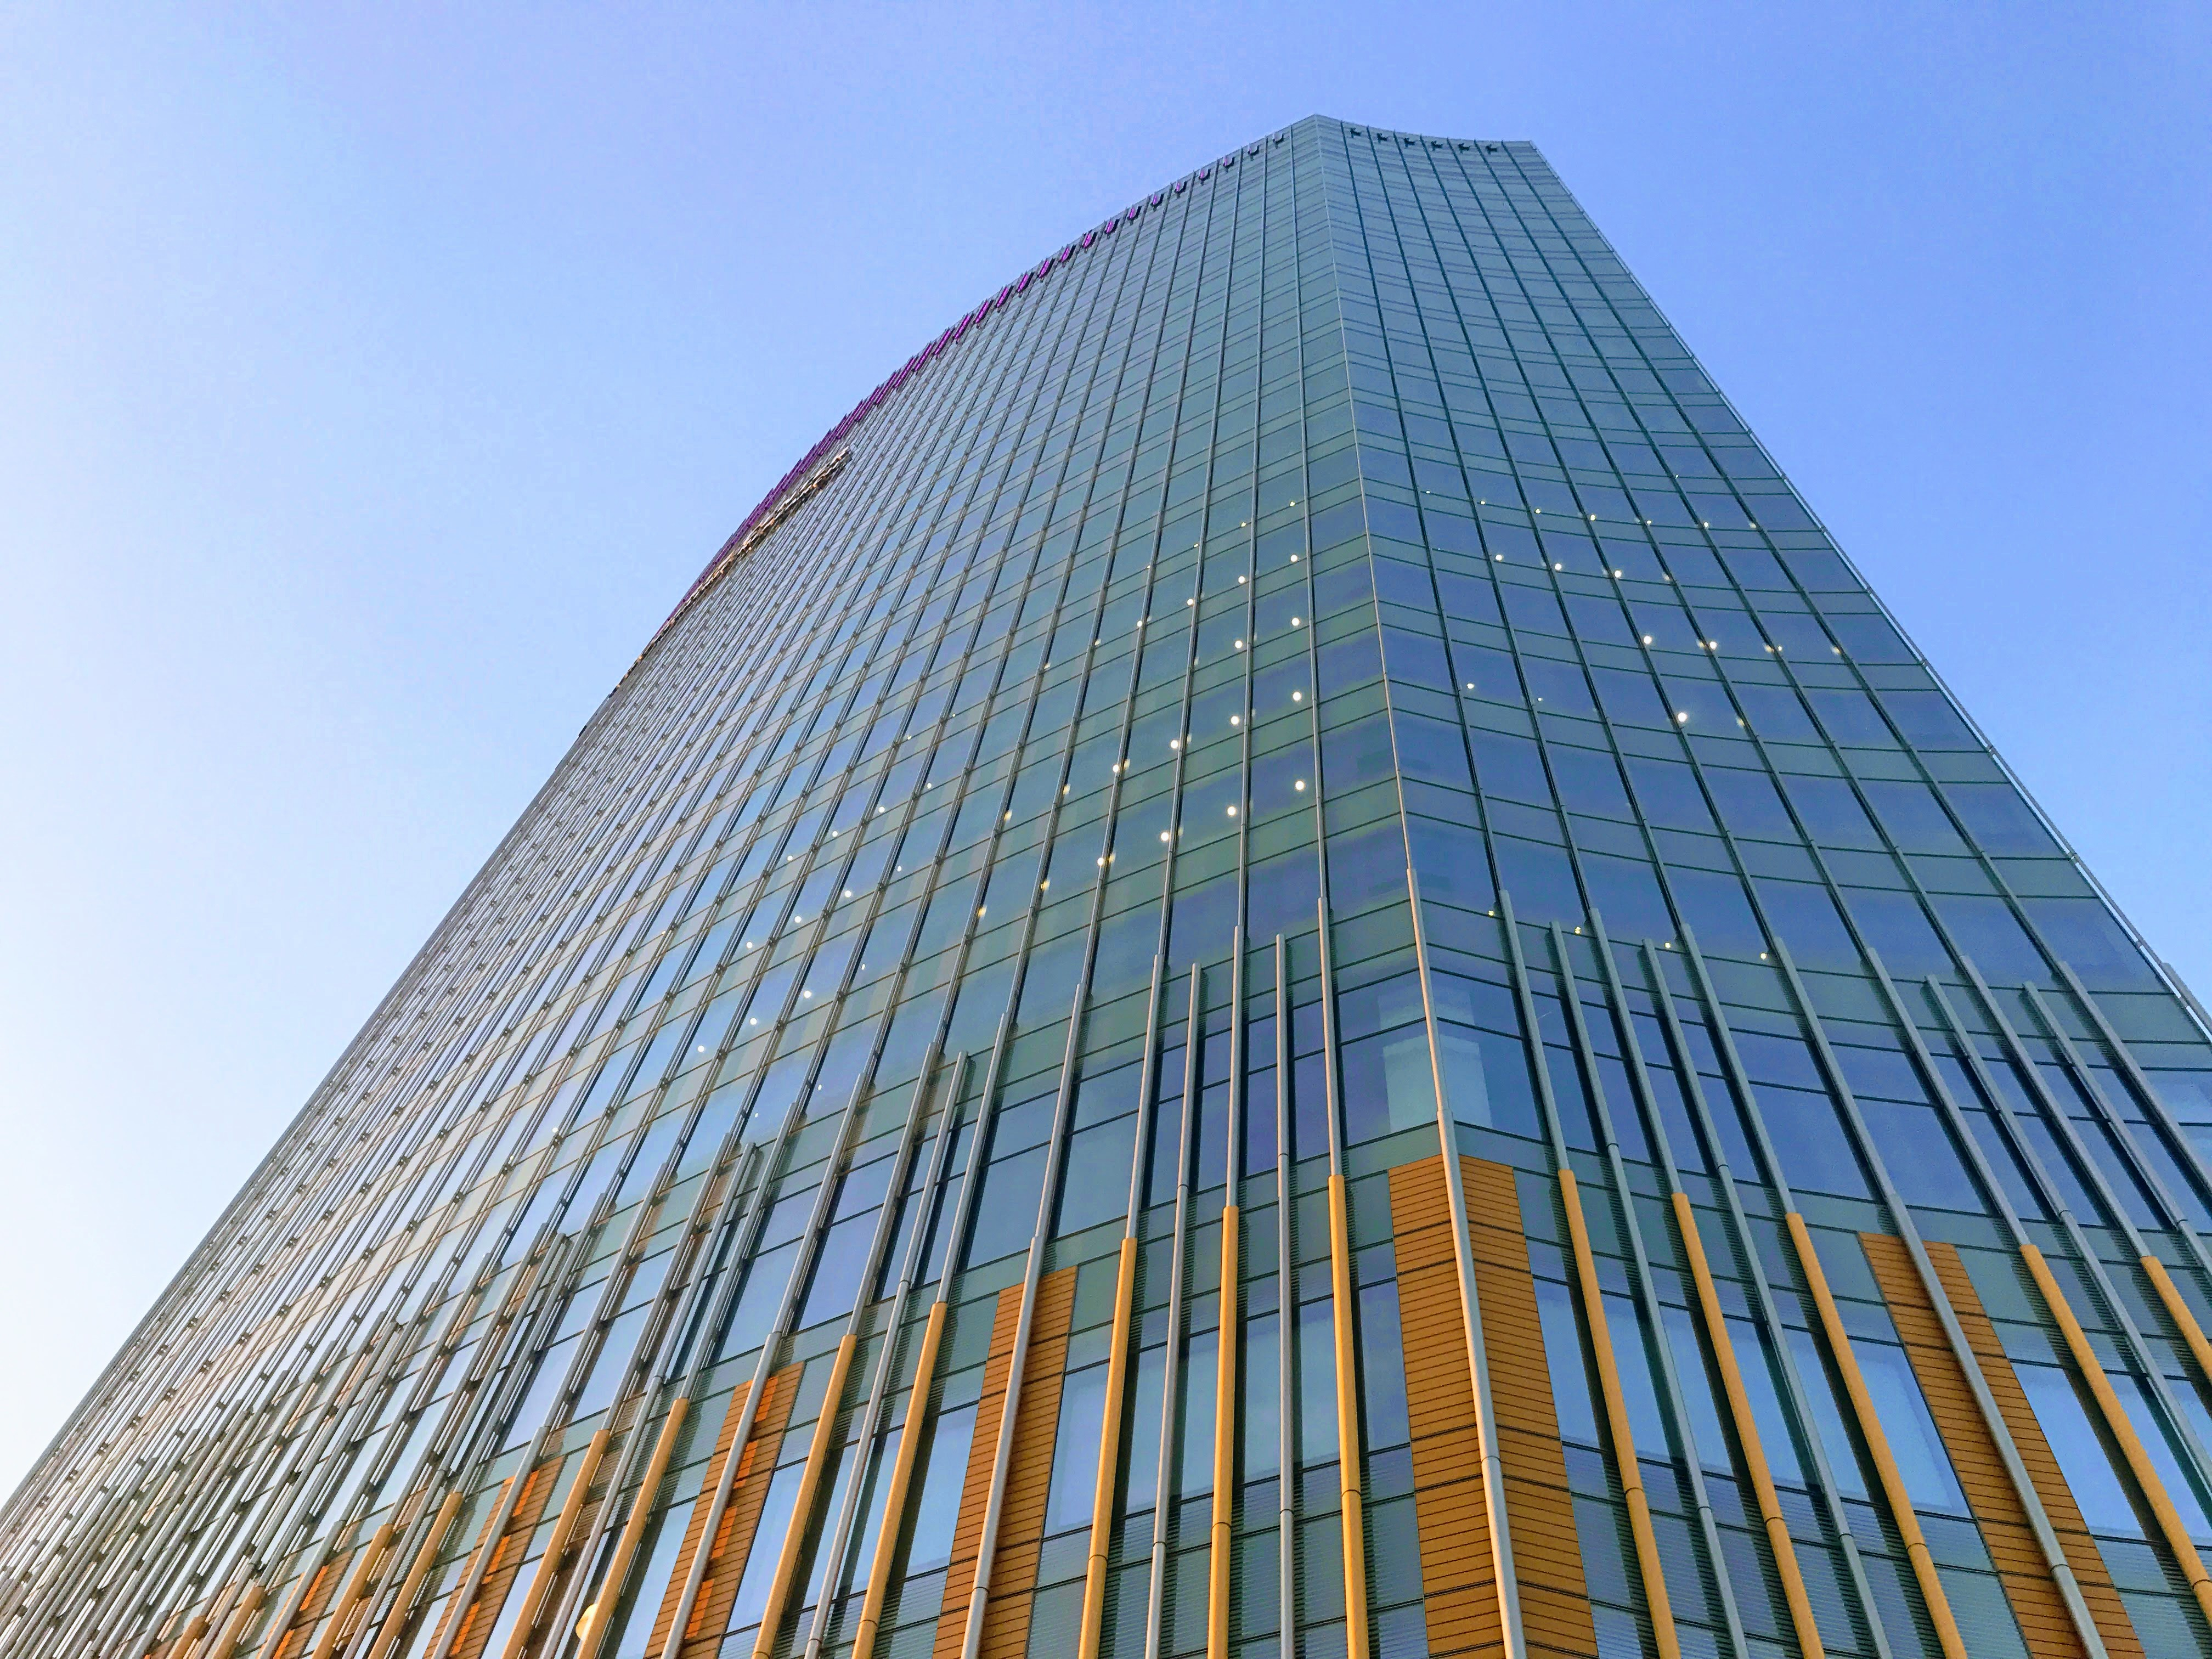 The exterior of the CHOP Tower in Philadelphia. The facade is glass with red structural details.